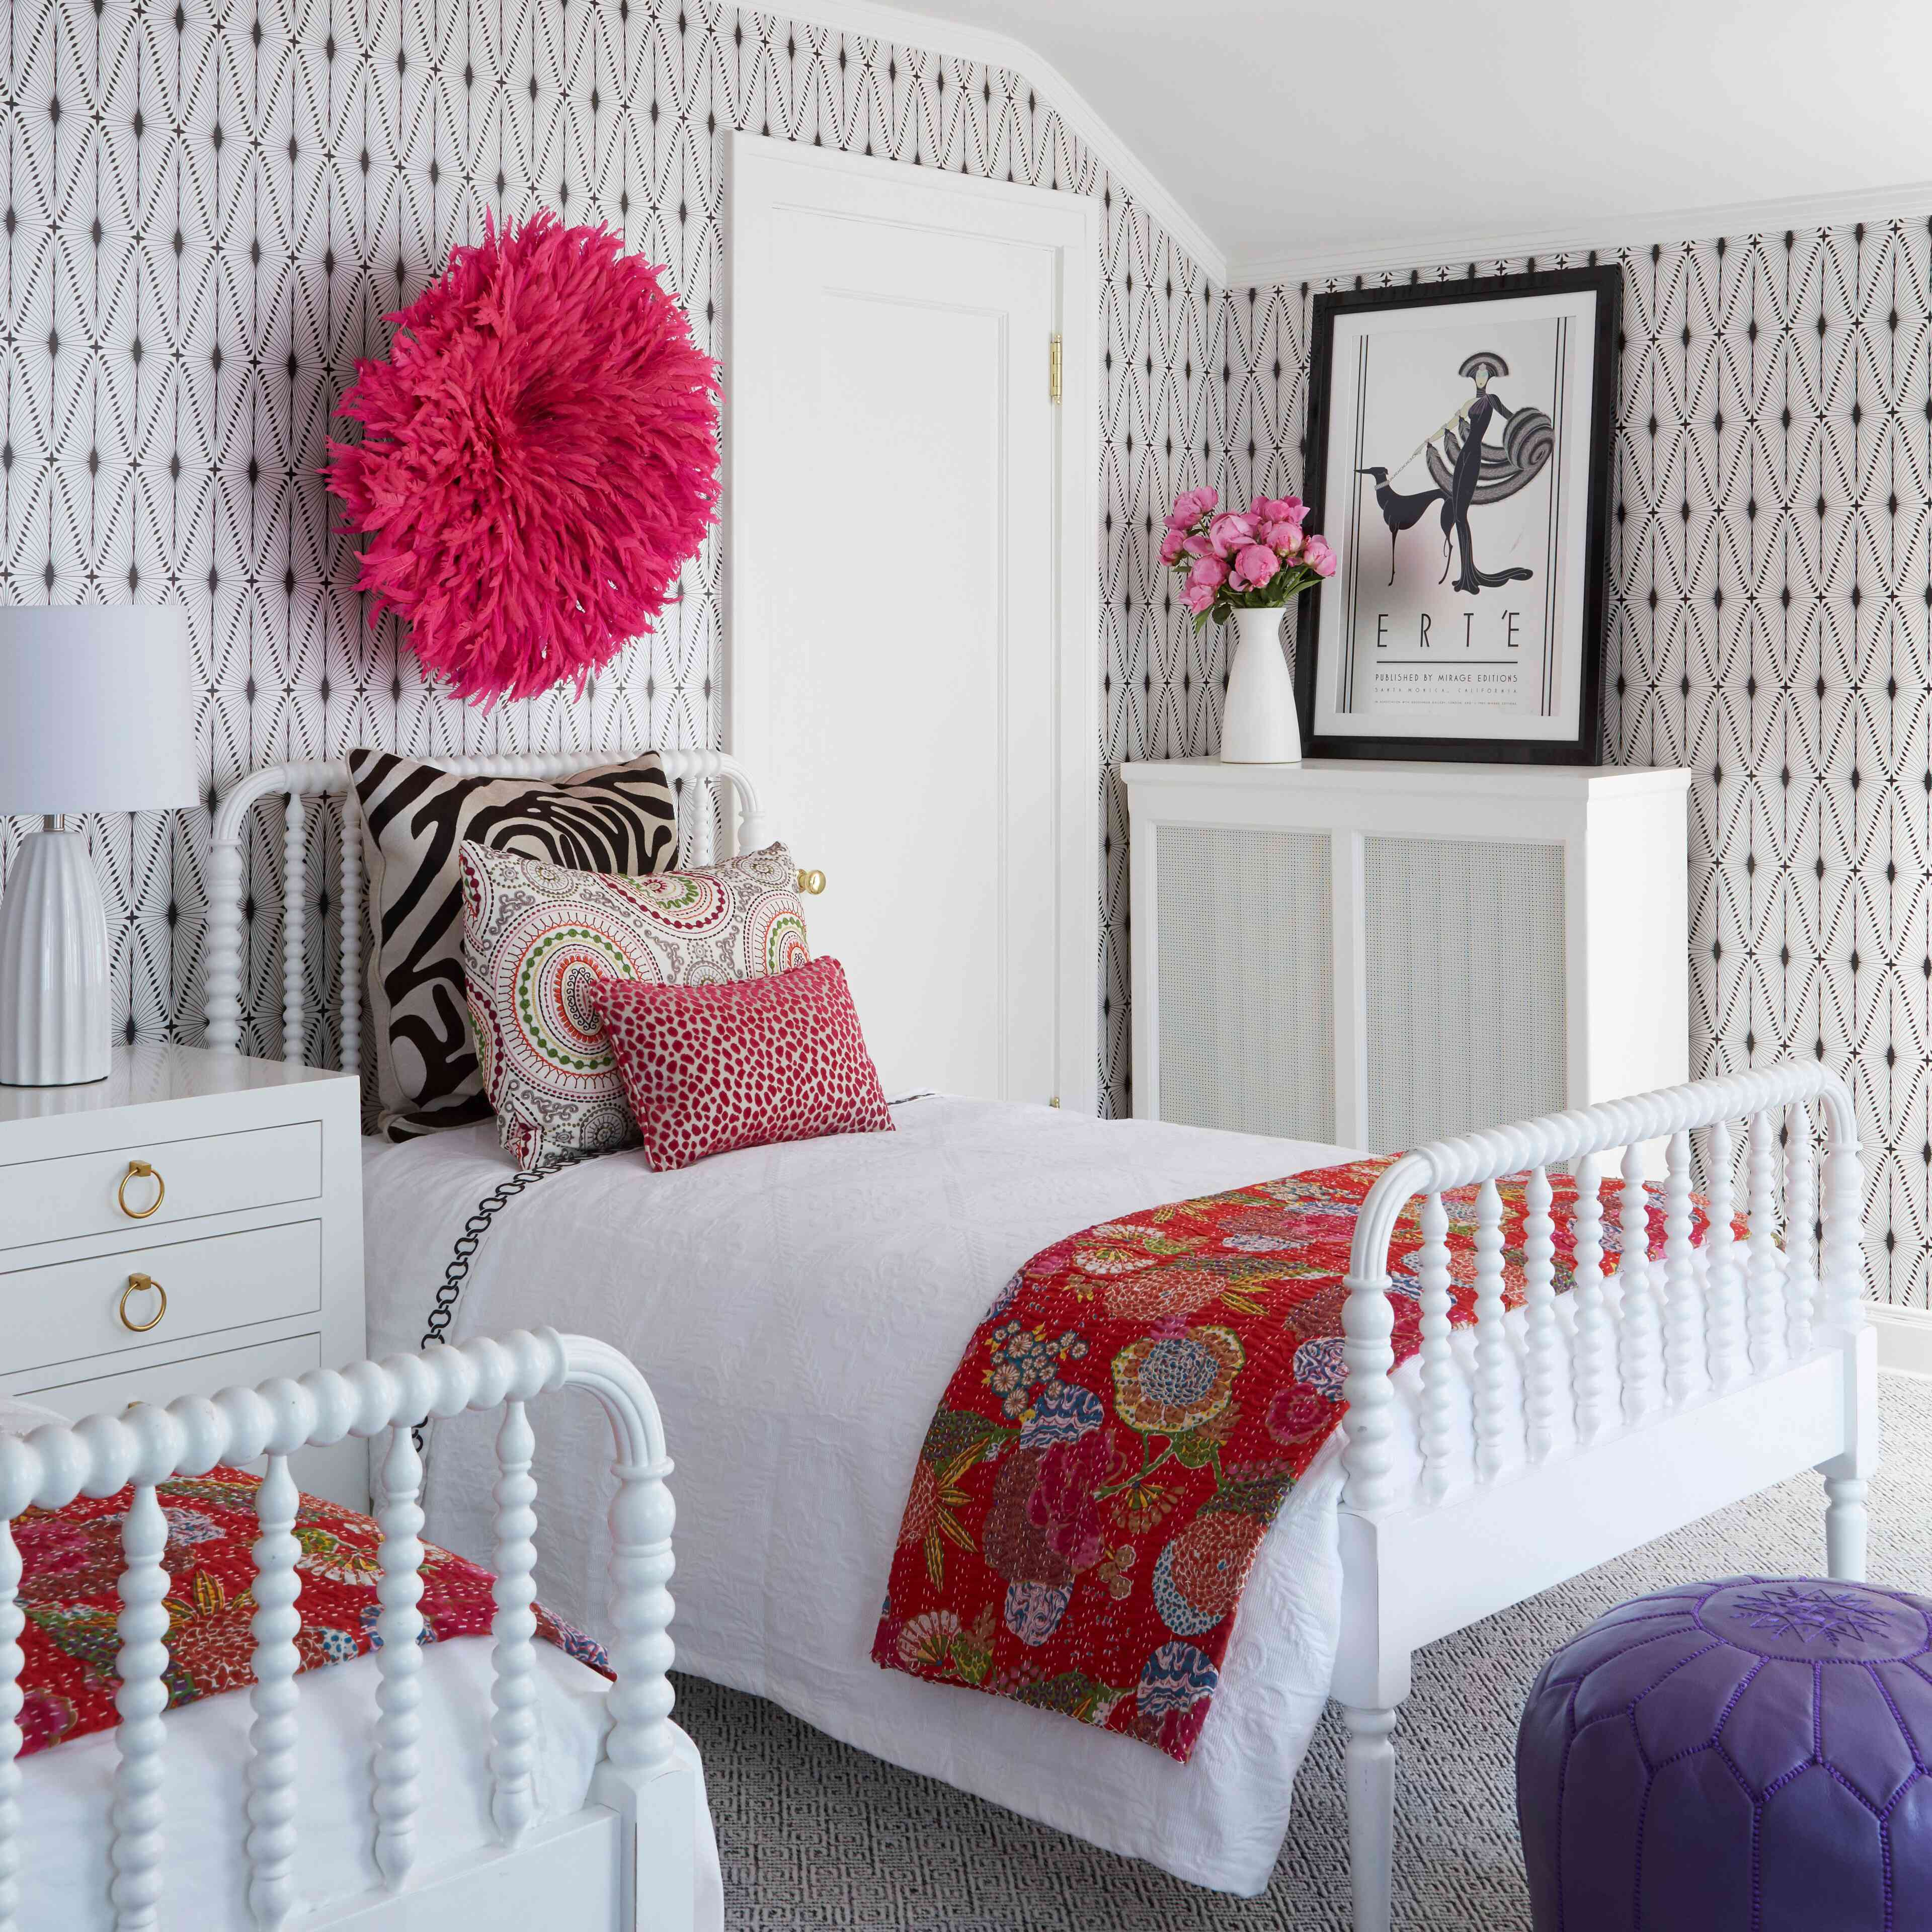 Small bedroom with two twin beds